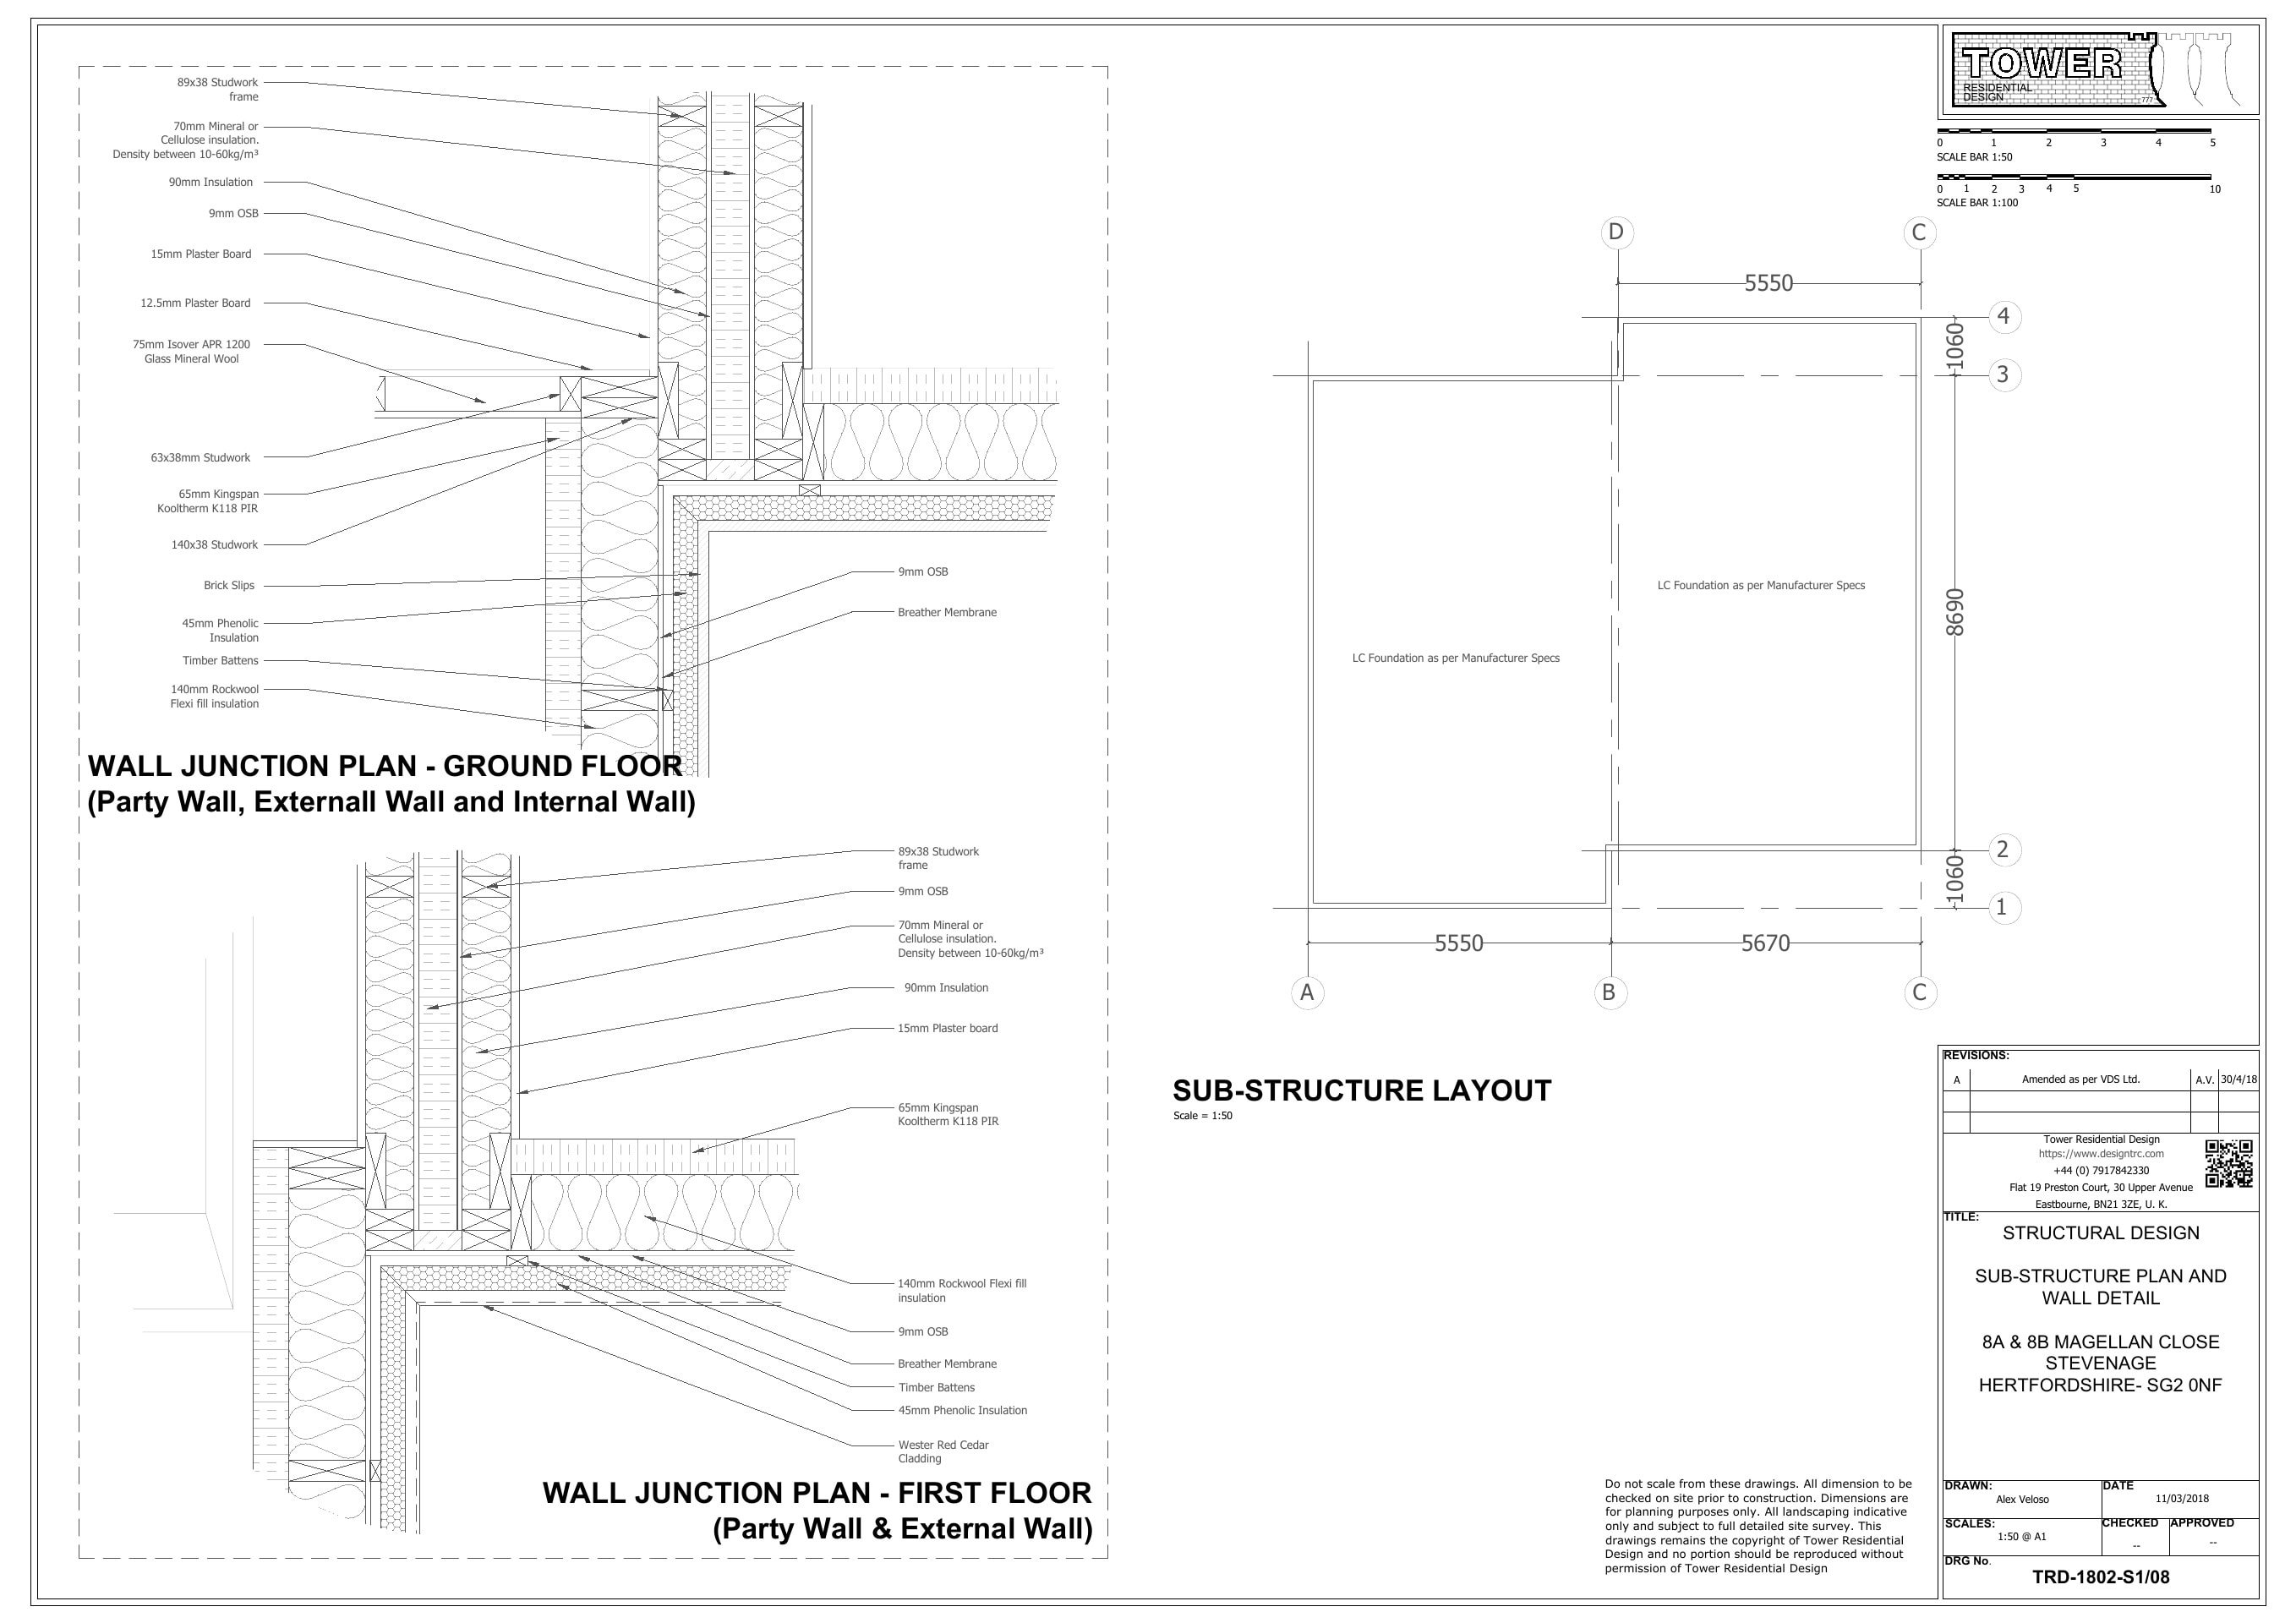 Building Regulations - Structural Design